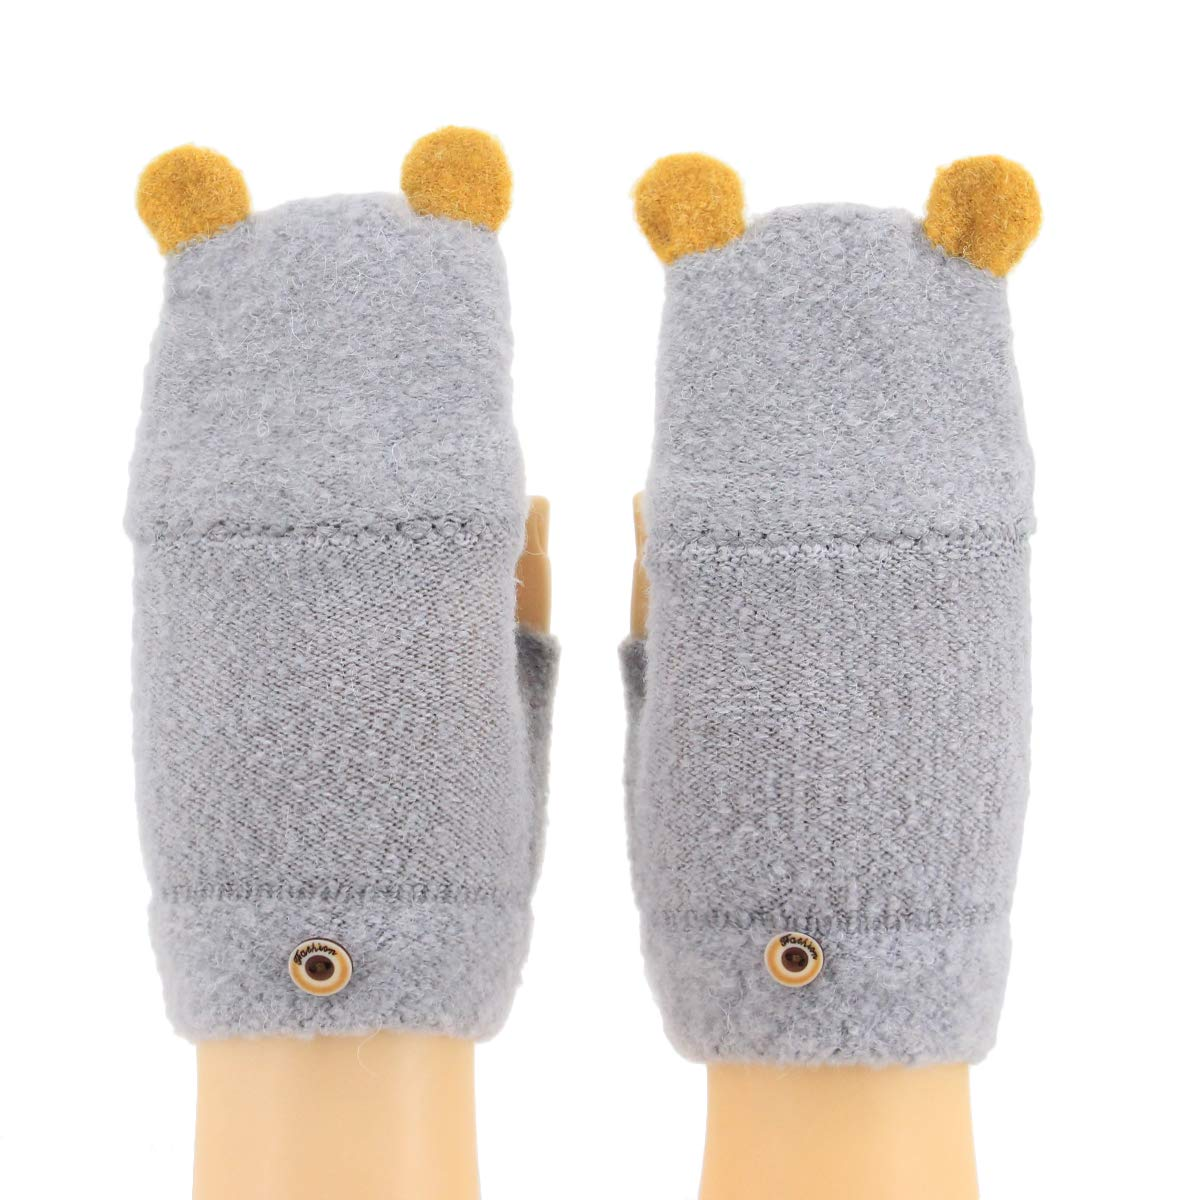 MIA Toddler Kids Winter Cute Rabbit Ears Gloves Jacquard Knitted Wools Mitten Stretchy Glove Set